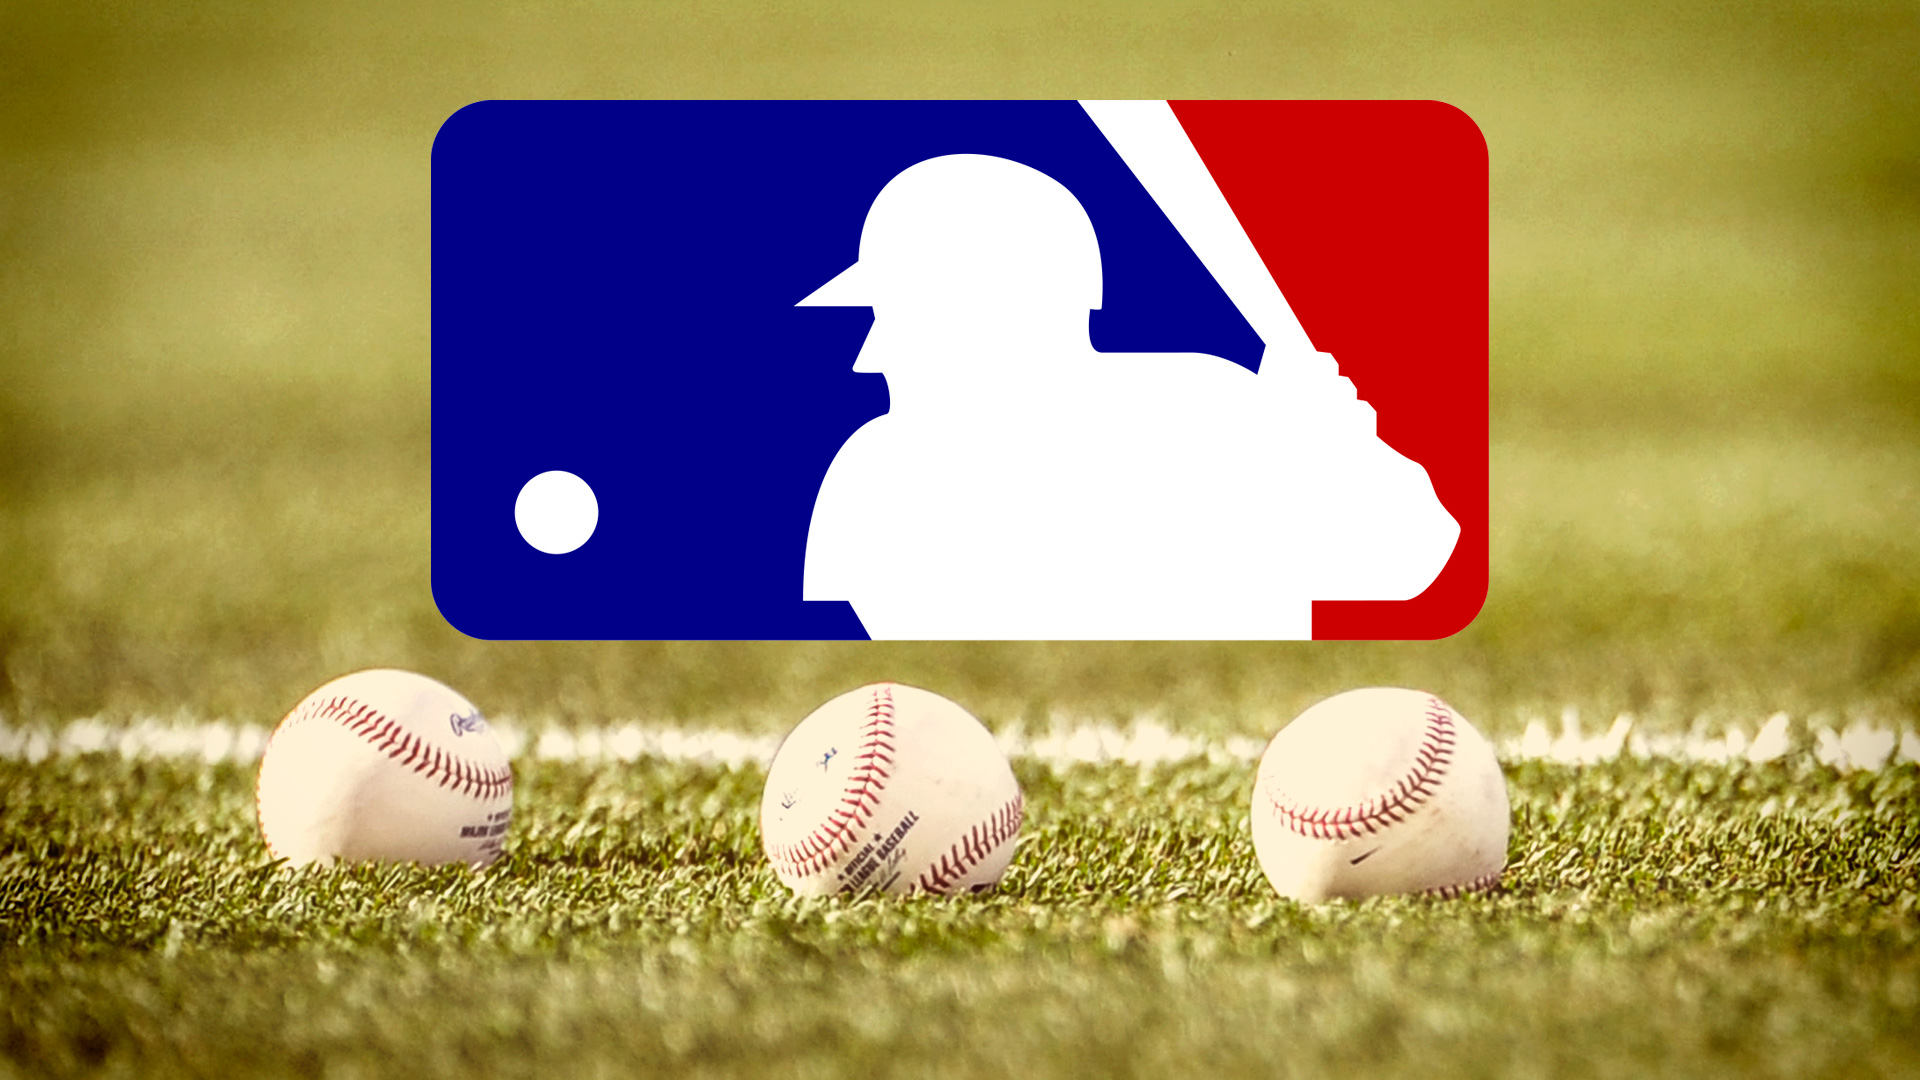 ... Tema - <b>MAJOR LEAGUE BASEBALL</b> (<b>MLB</b>) LUNES 04/04/<b>2016</b> |12 Juegos Acti